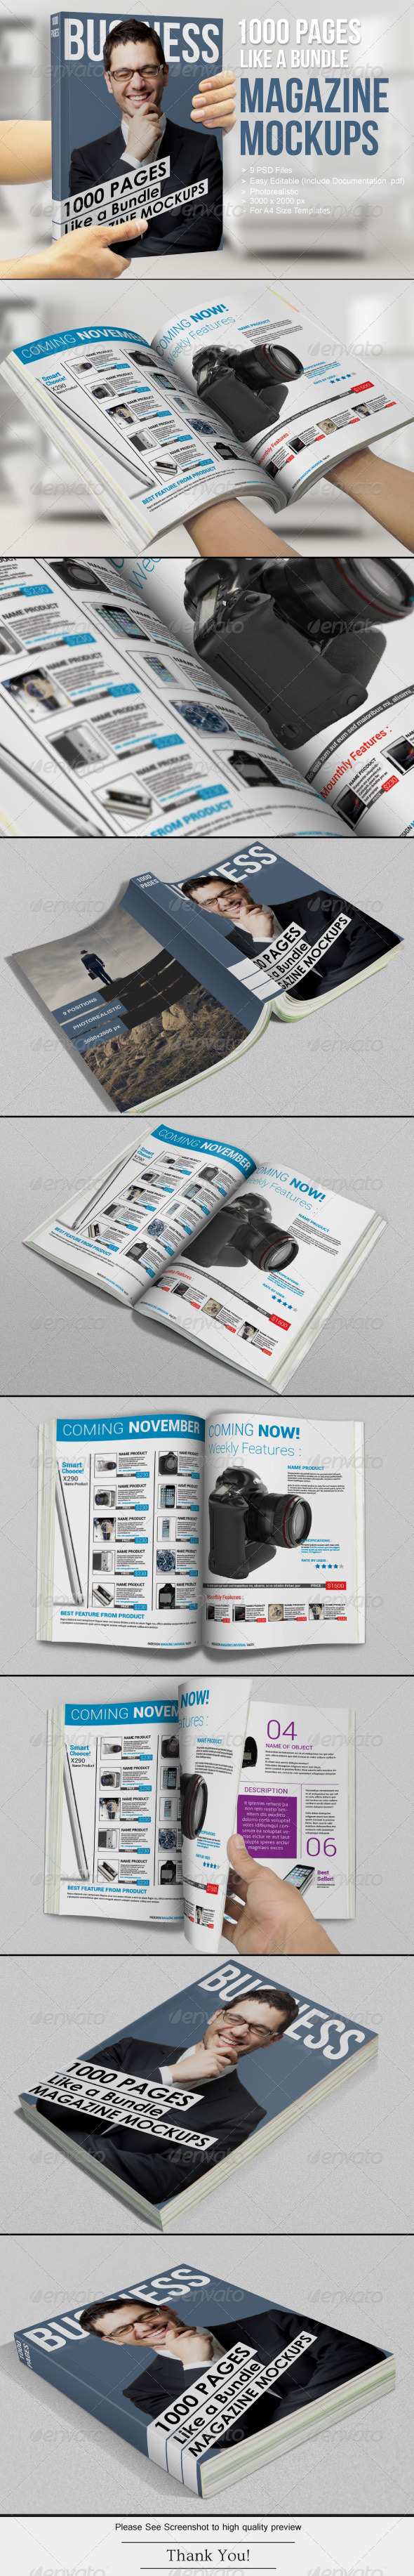 1000 Pages Magazine Mockups